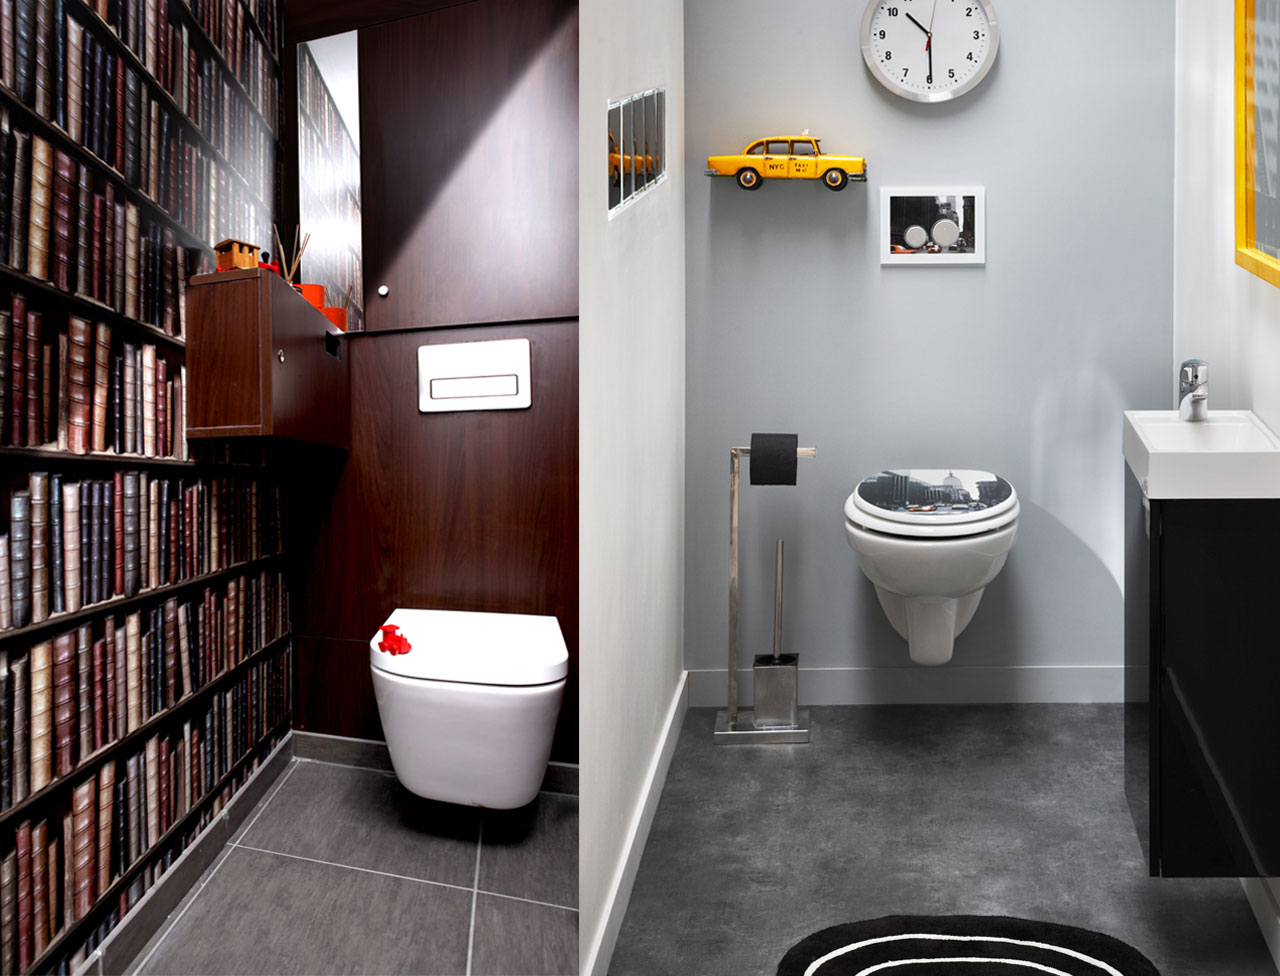 D coration interieur toilettes exemples d 39 am nagements for Idee design interieur